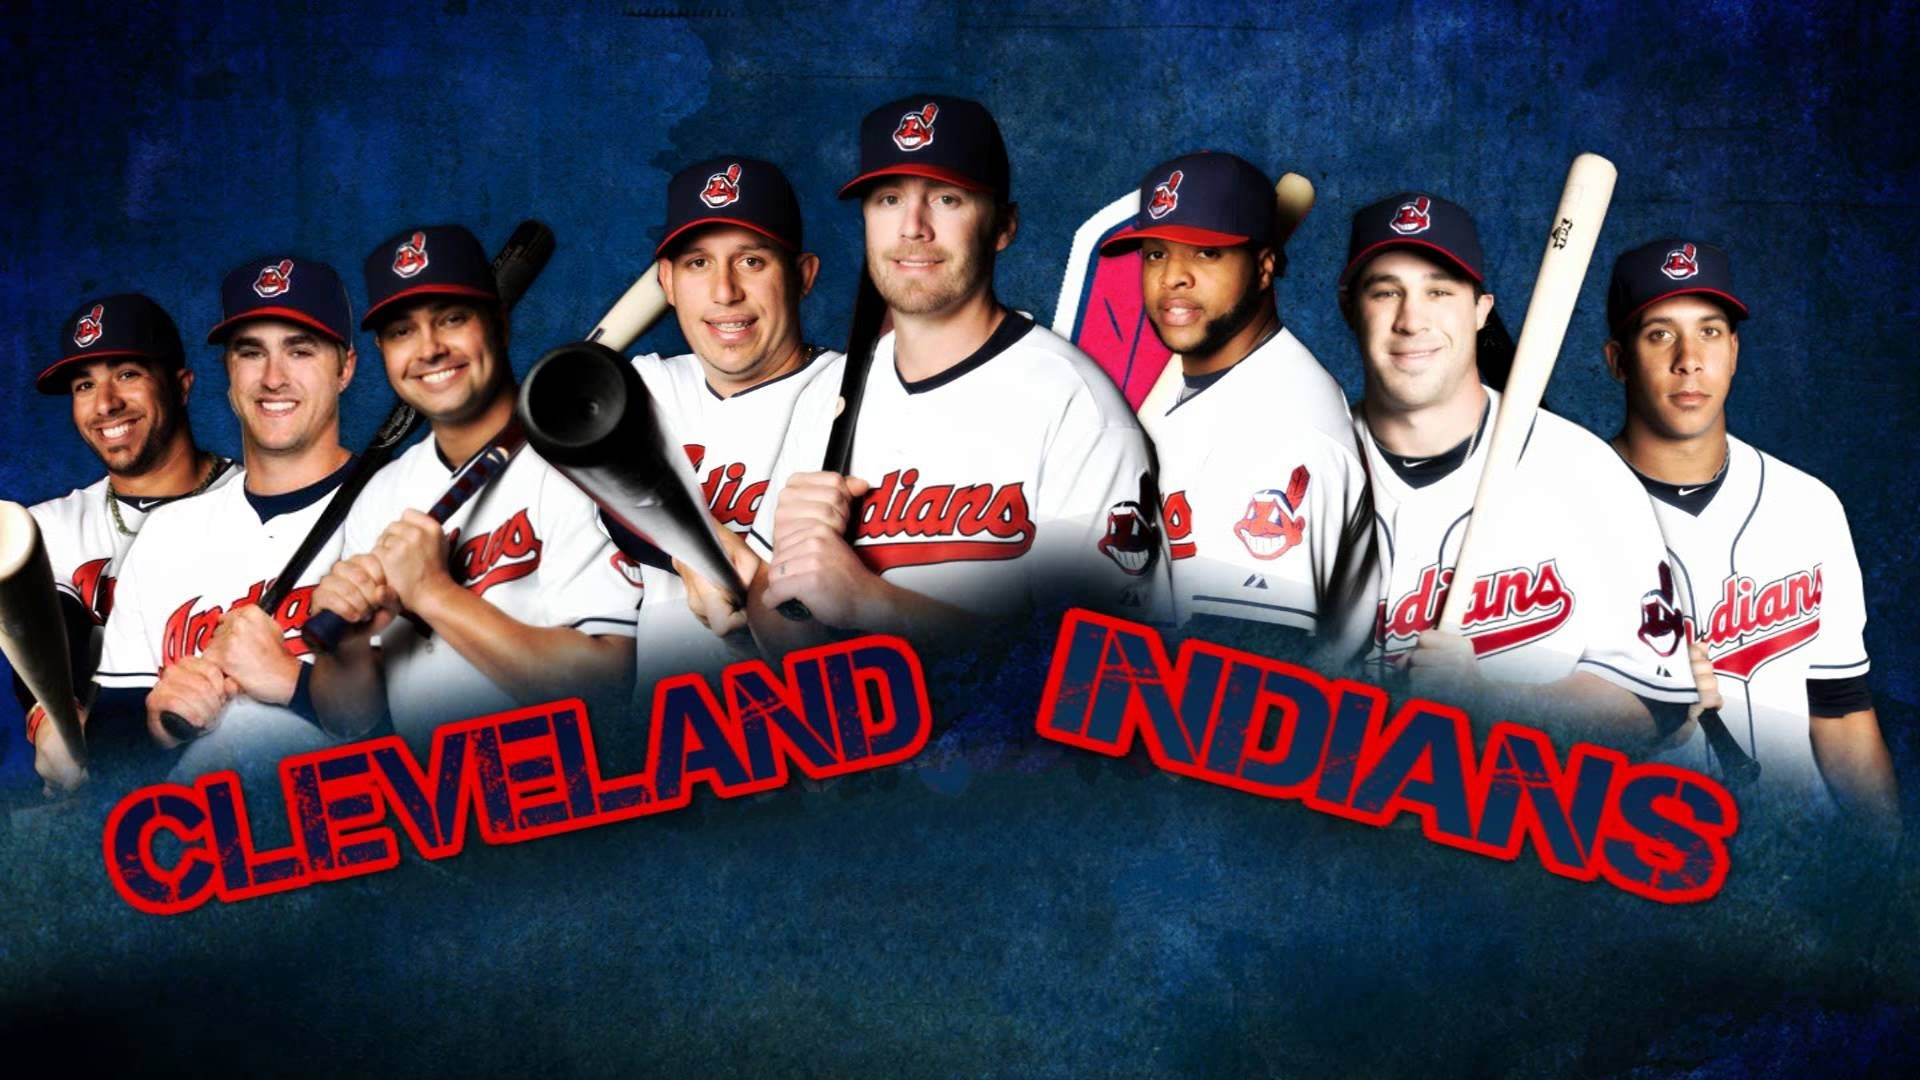 Inspirational Sports Quotes Wallpaper For Iphone Download Free Cleveland Indians Background Pixelstalk Net